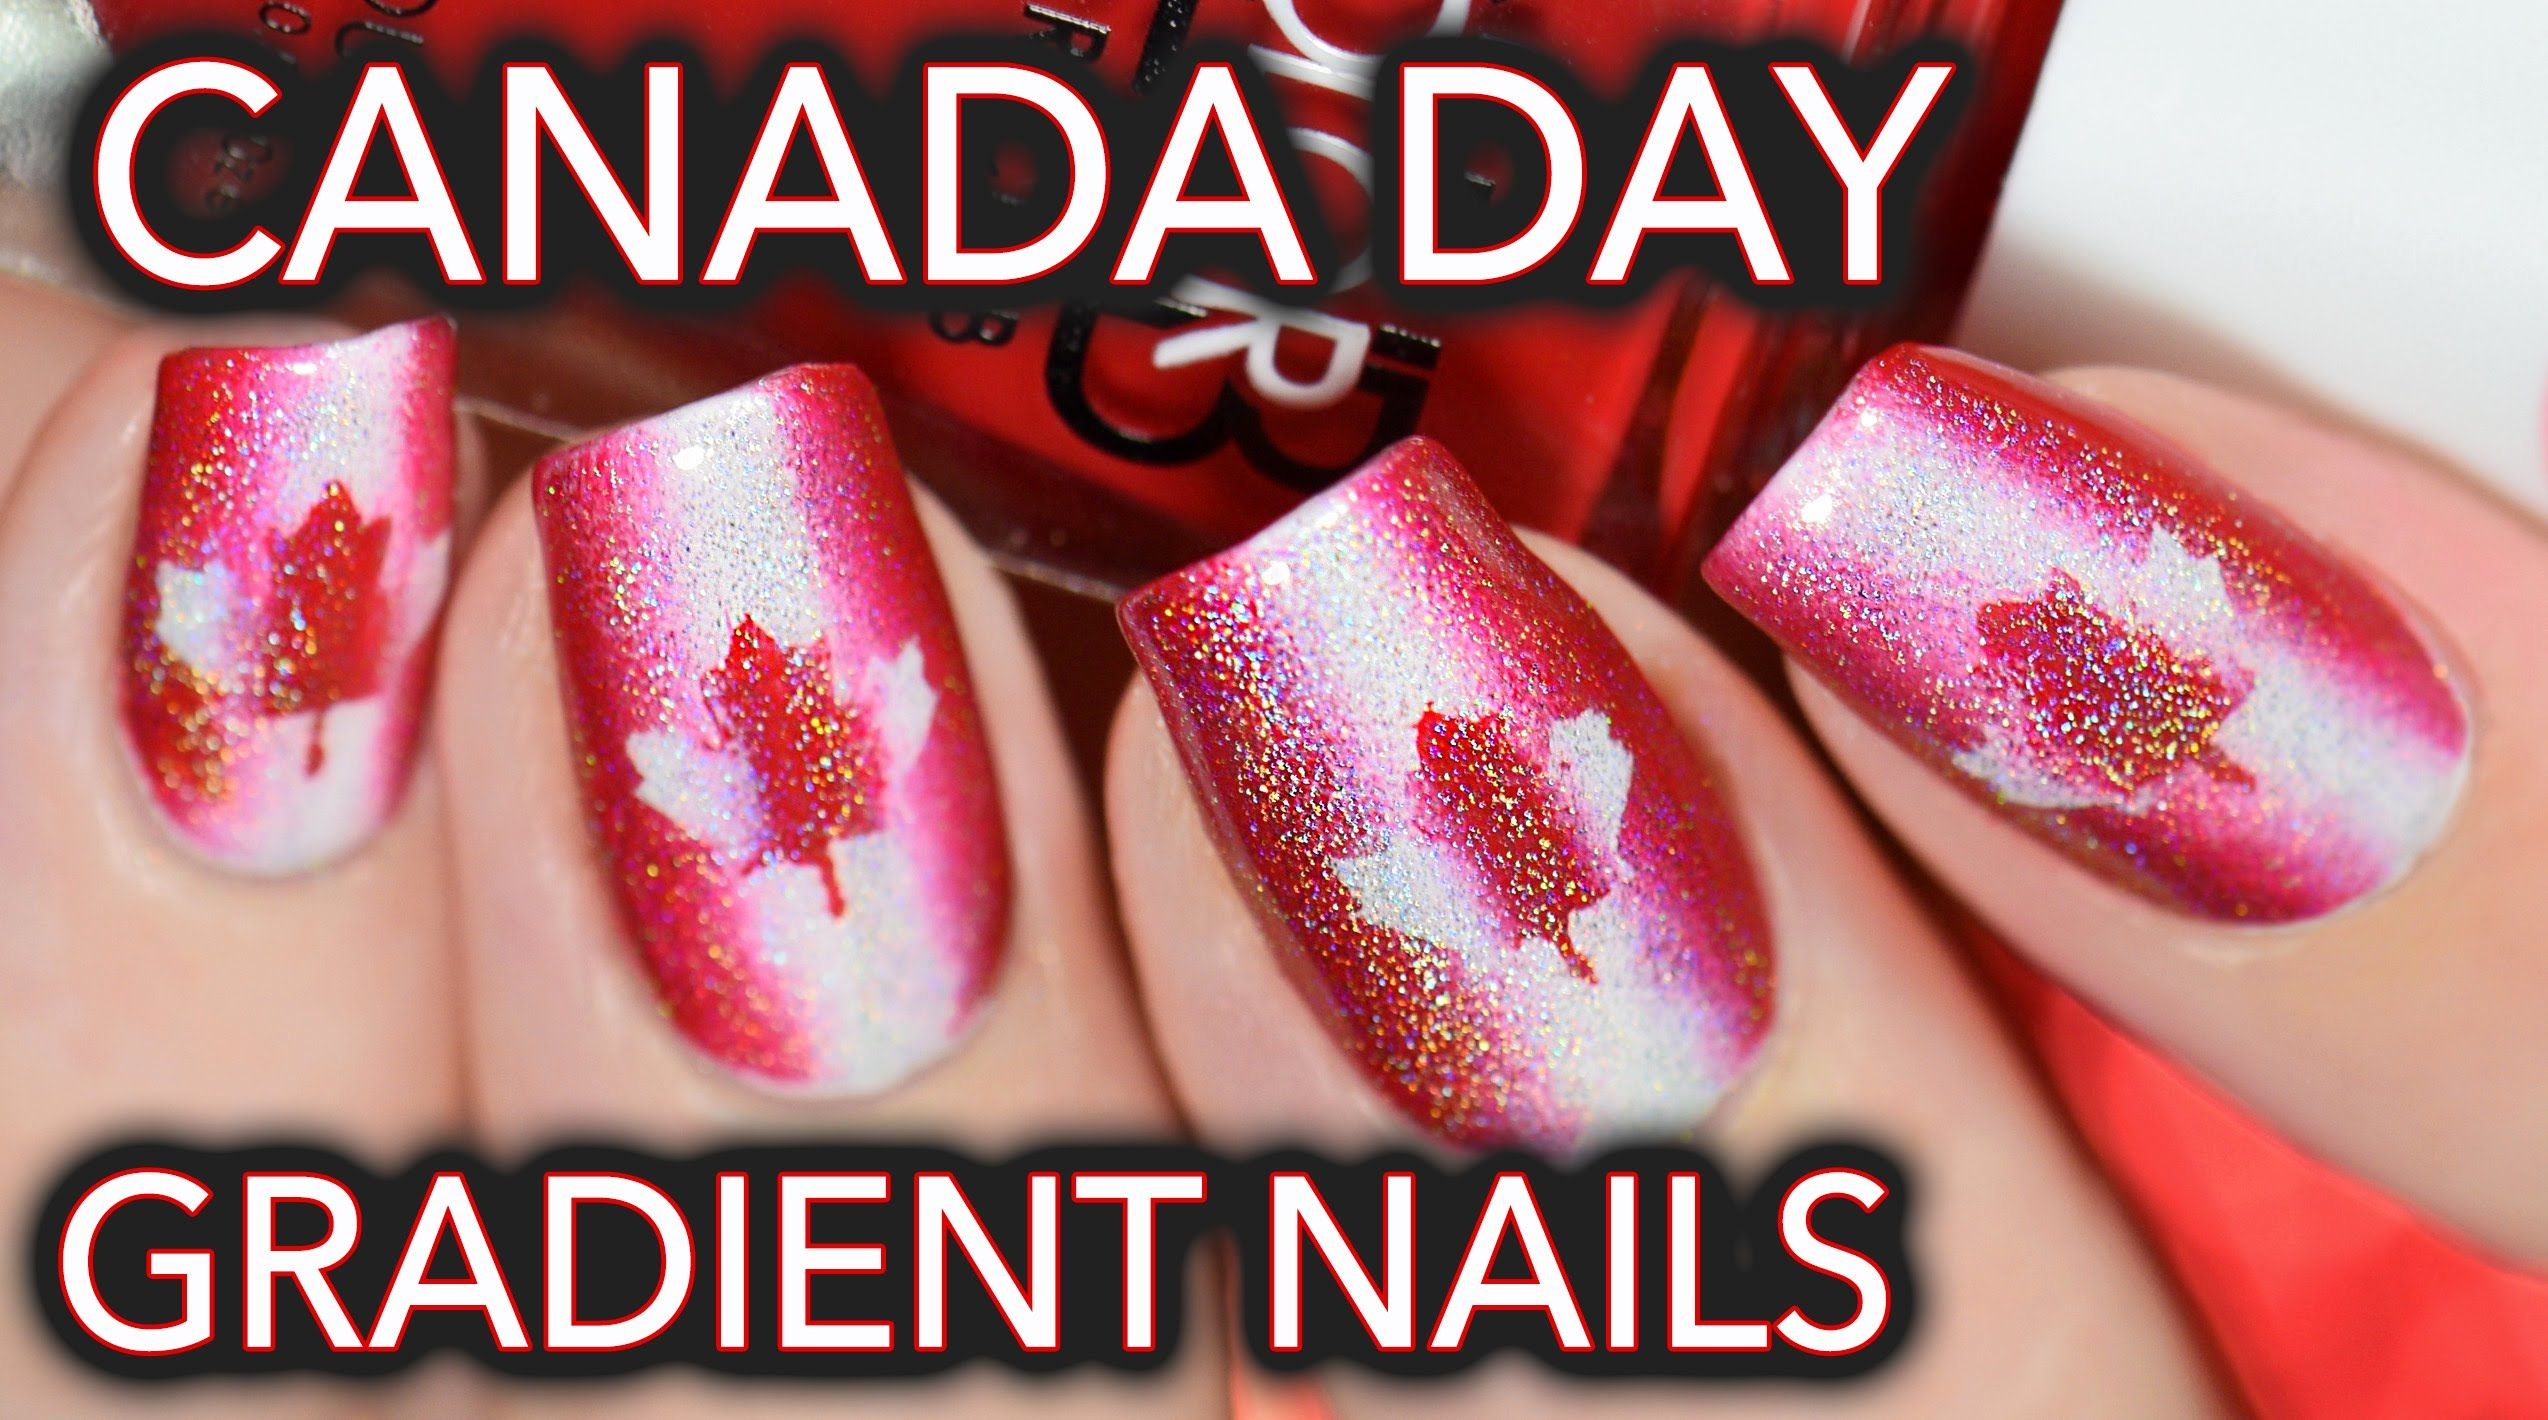 Canada Day Nail Art Red White Amp Holo Fancy Nails Designs Red White Nails New Nail Art